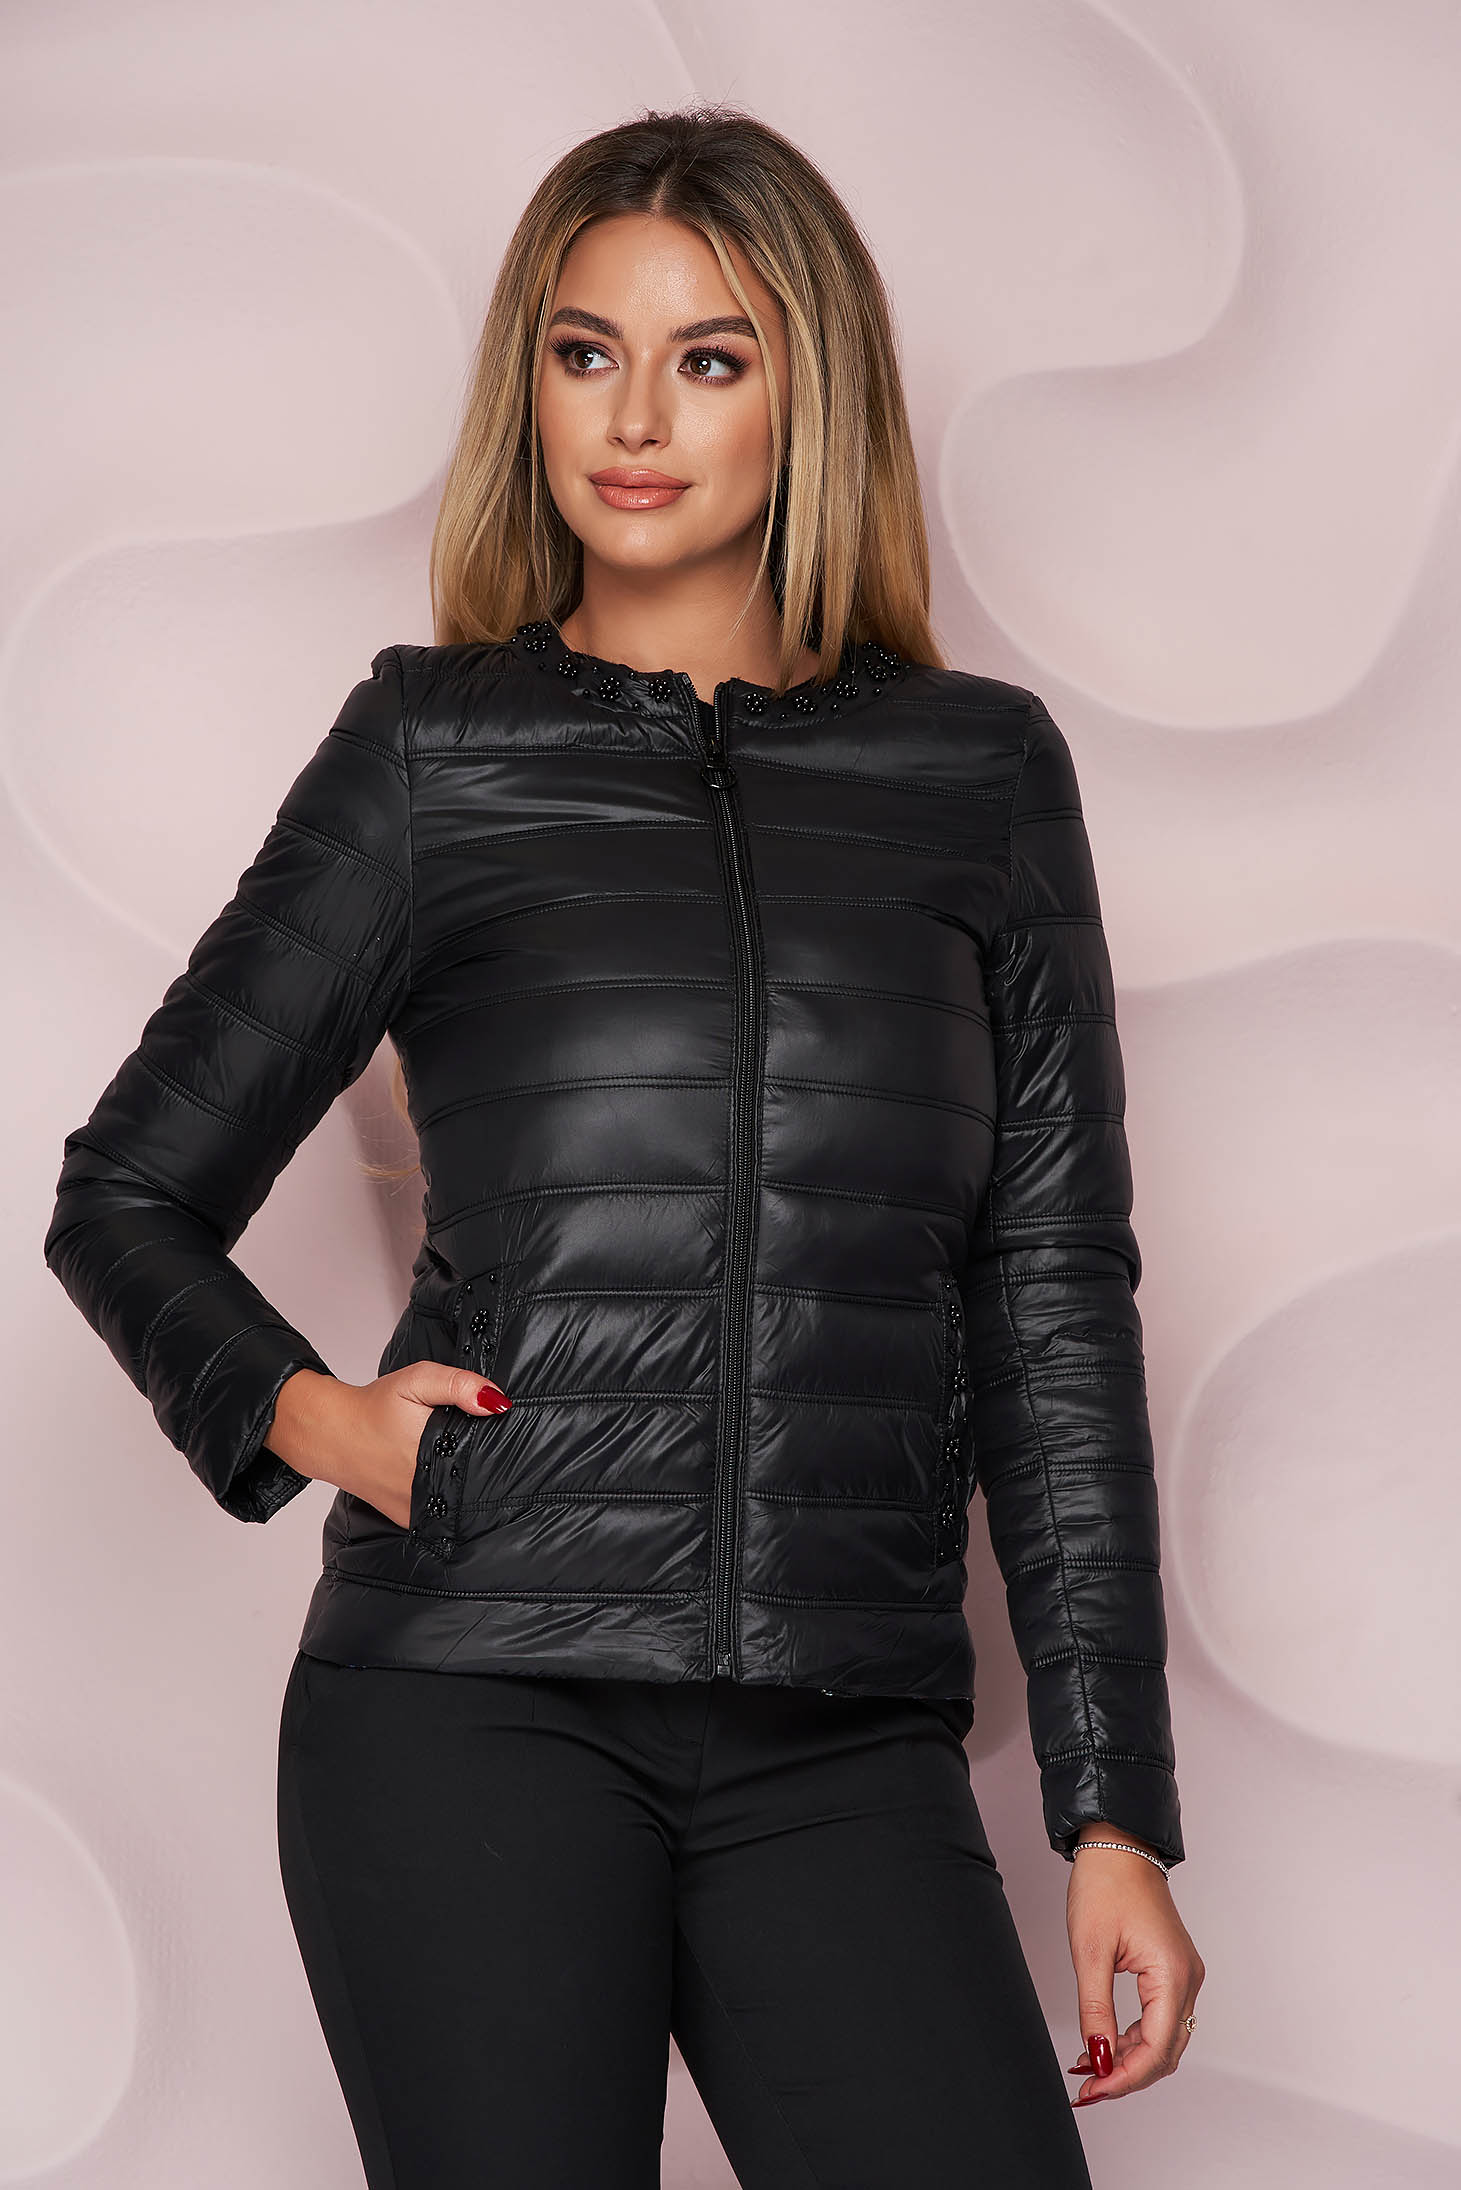 Black jacket from slicker thin fabric with pockets with pearls straight